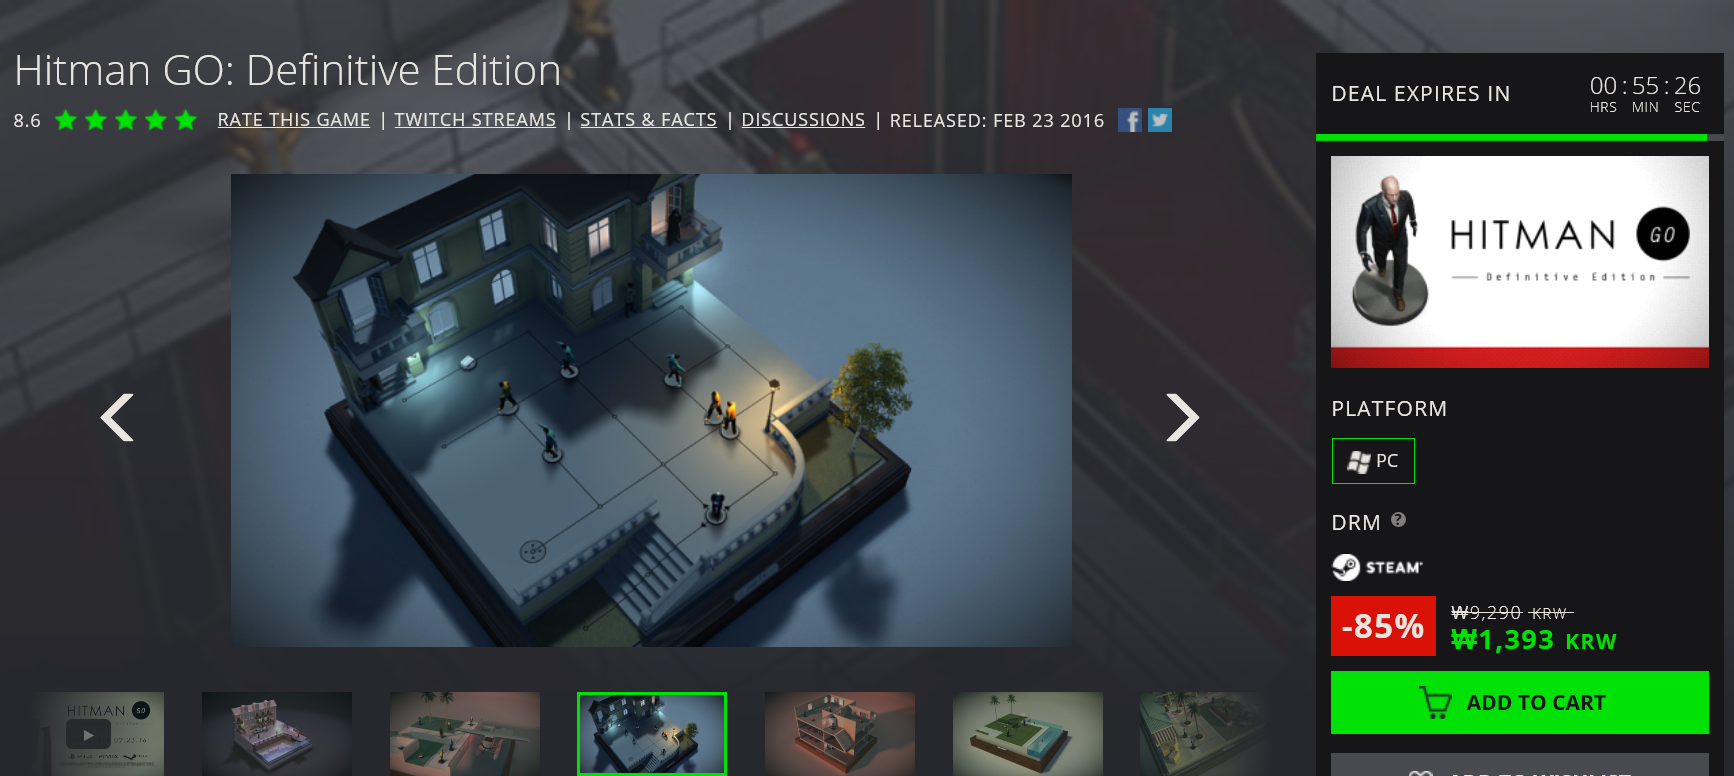 Screenshot_2019-05-20 Hitman GO Definitive Edition PC - Steam Game Keys.png